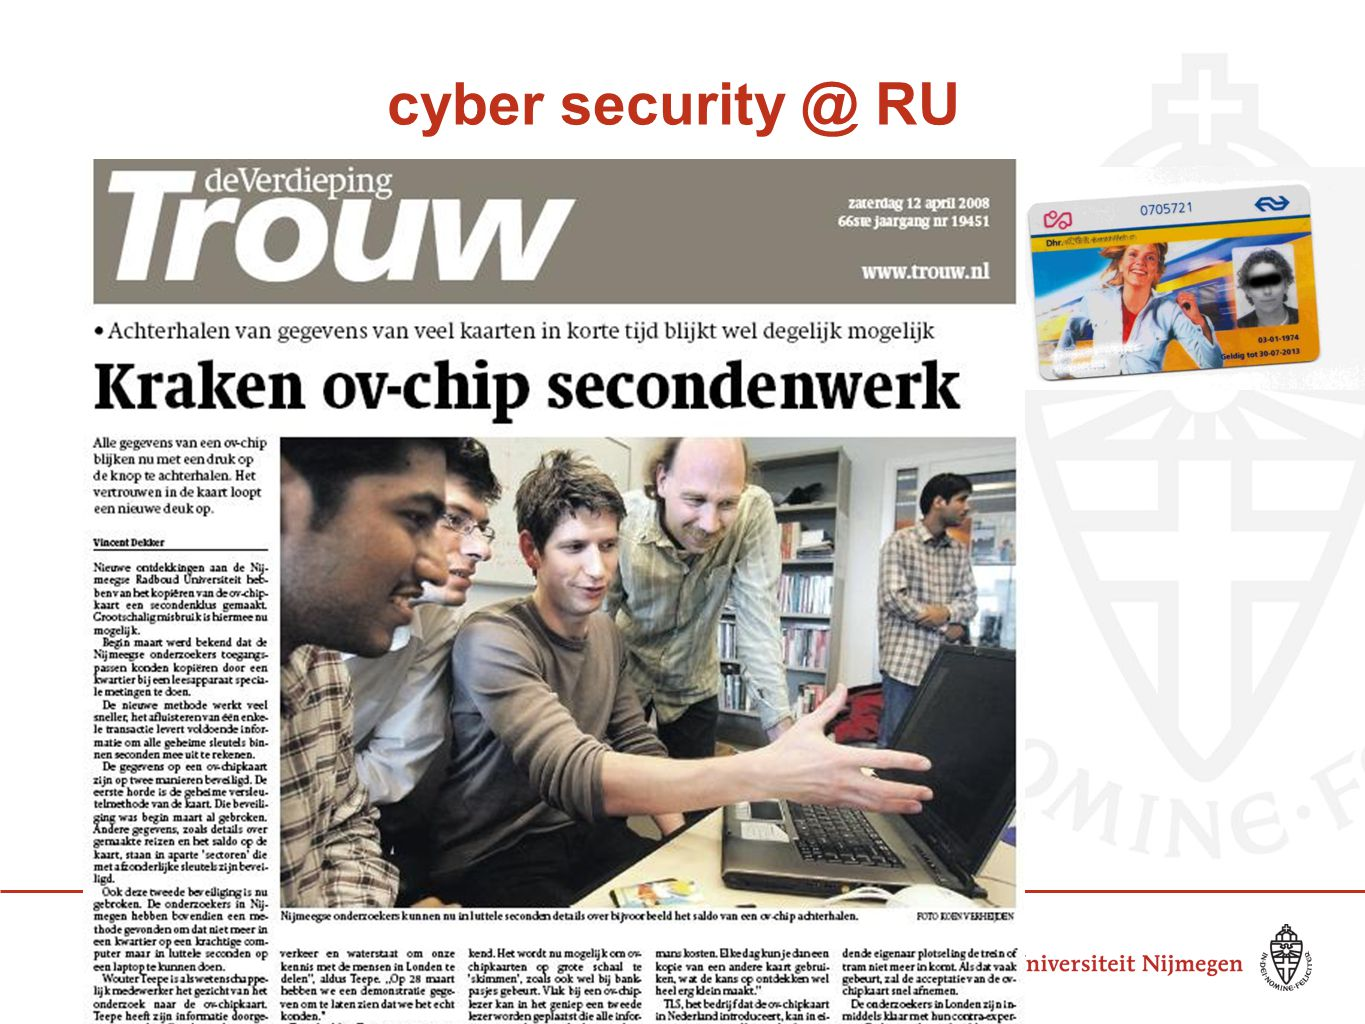 cyber security @ RU